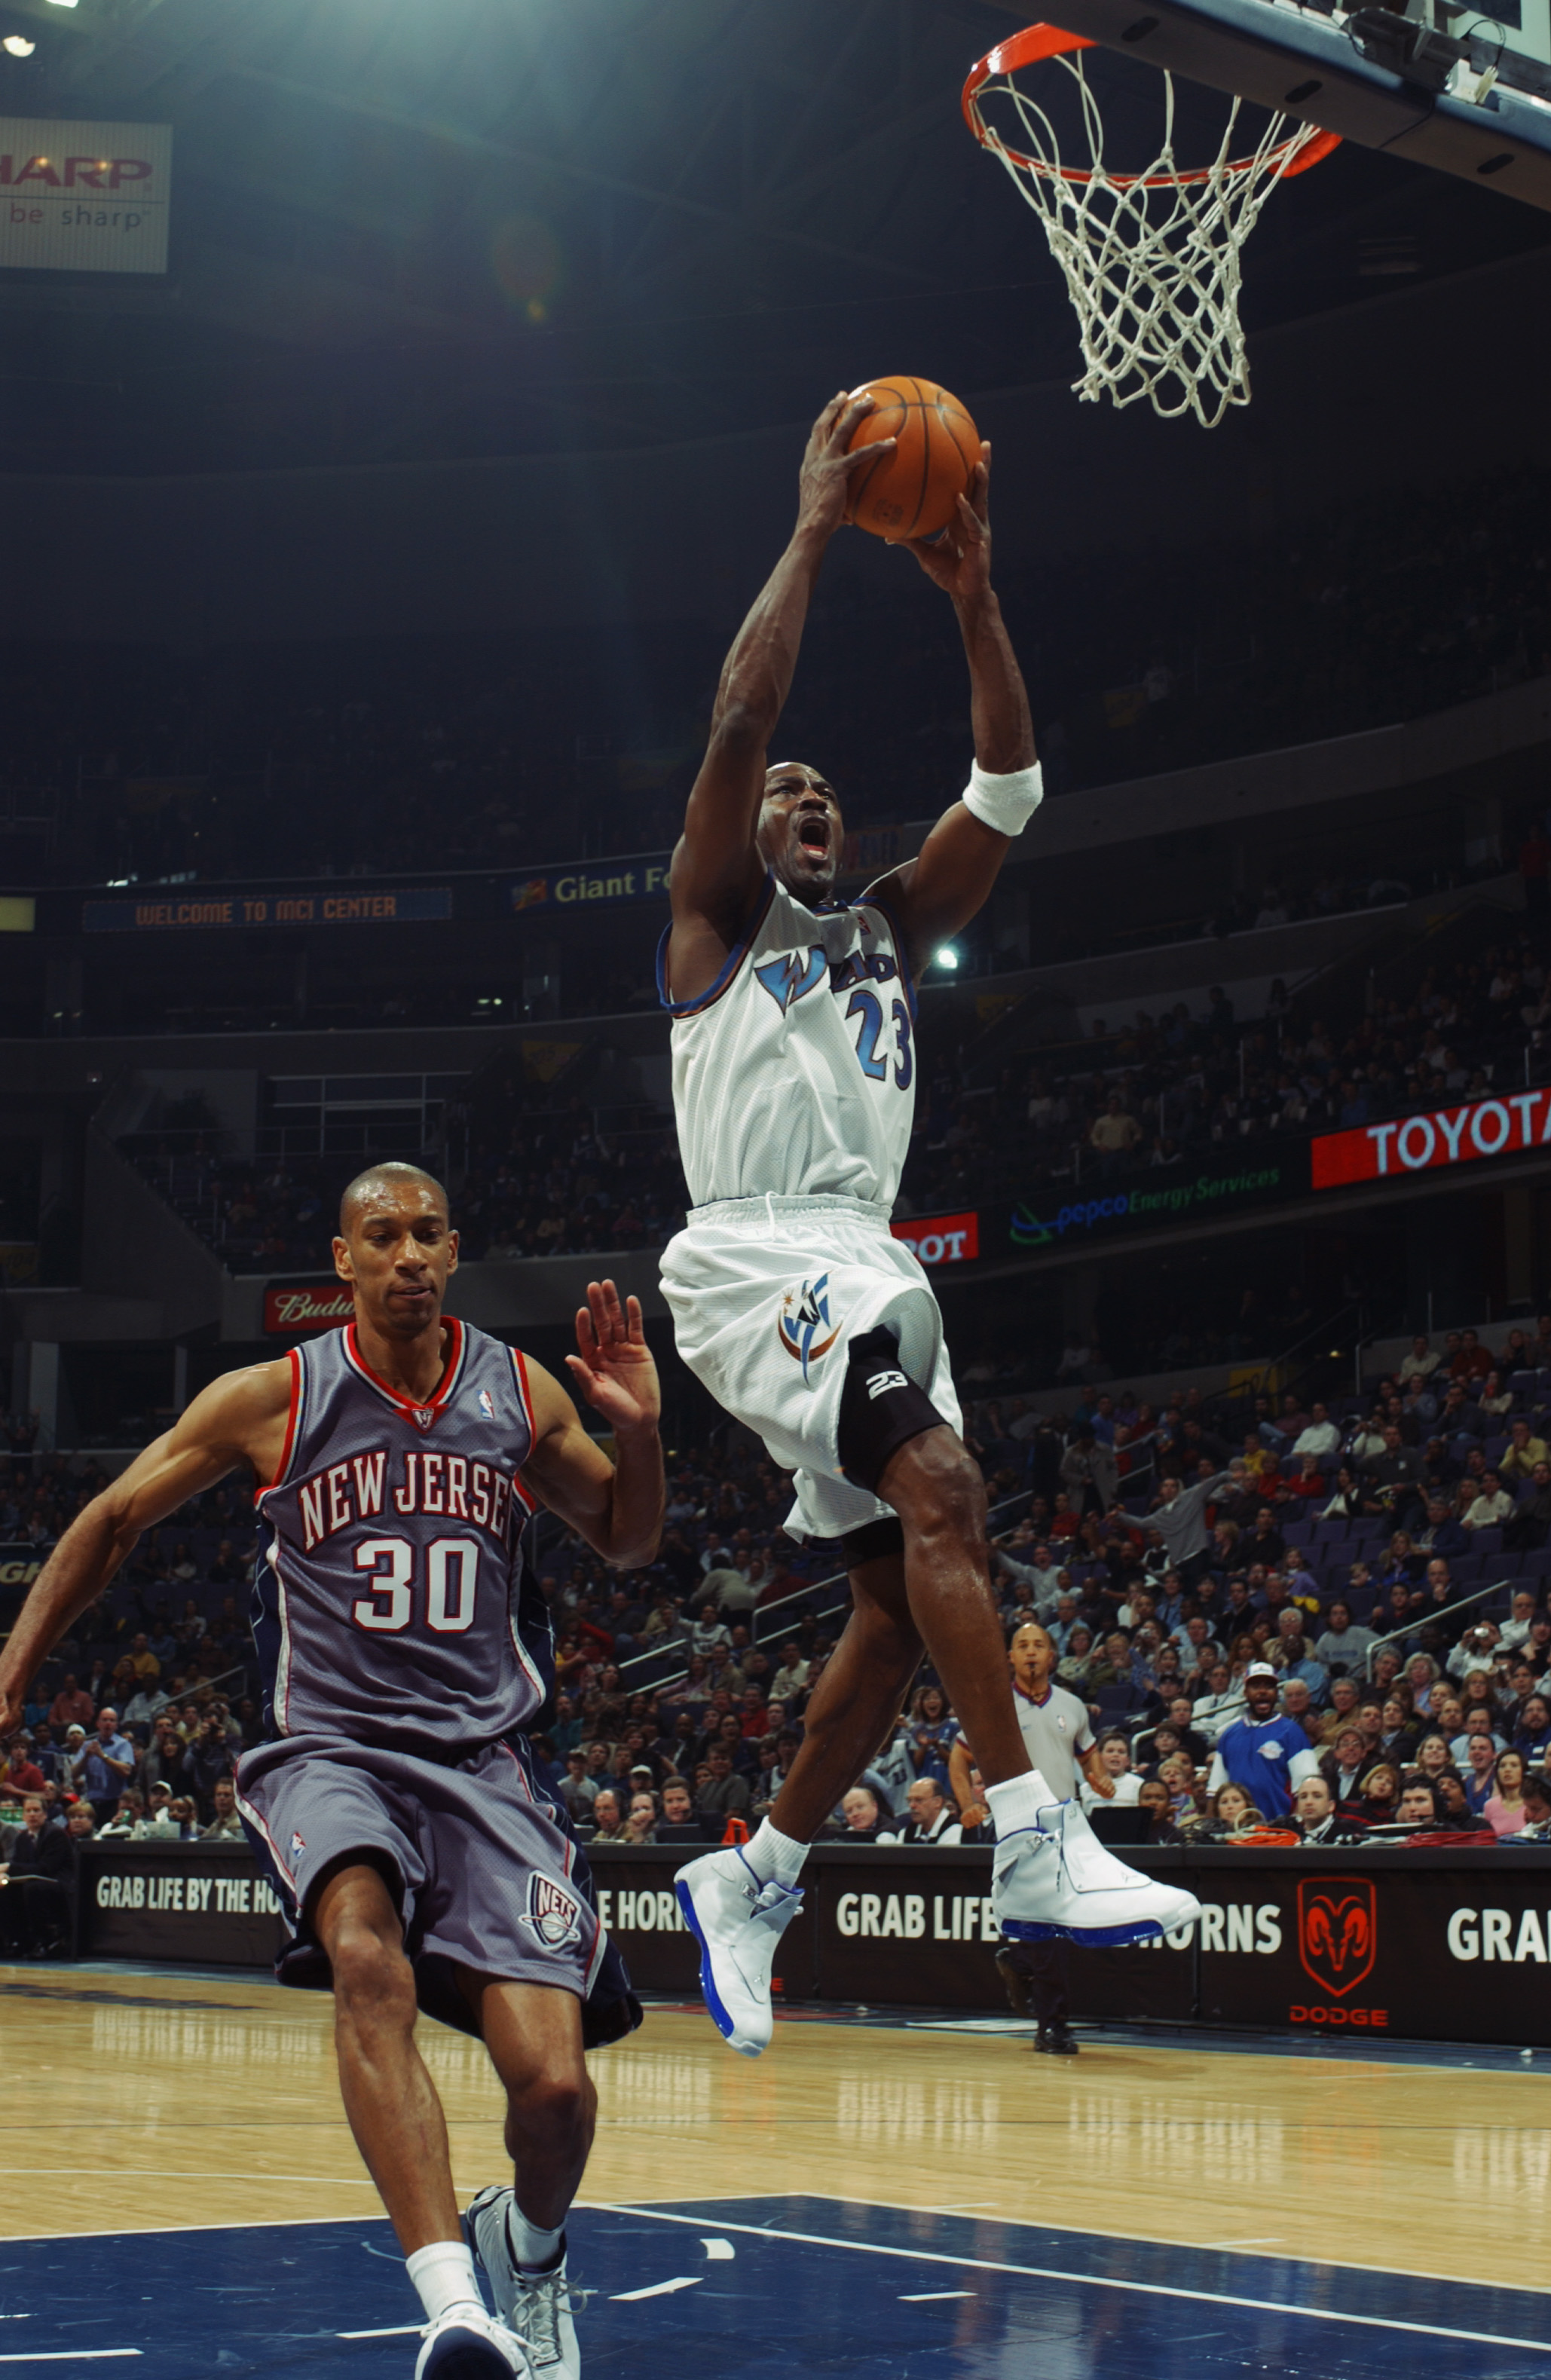 Michael Jordans 10 Greatest Games as a 40 Year Old